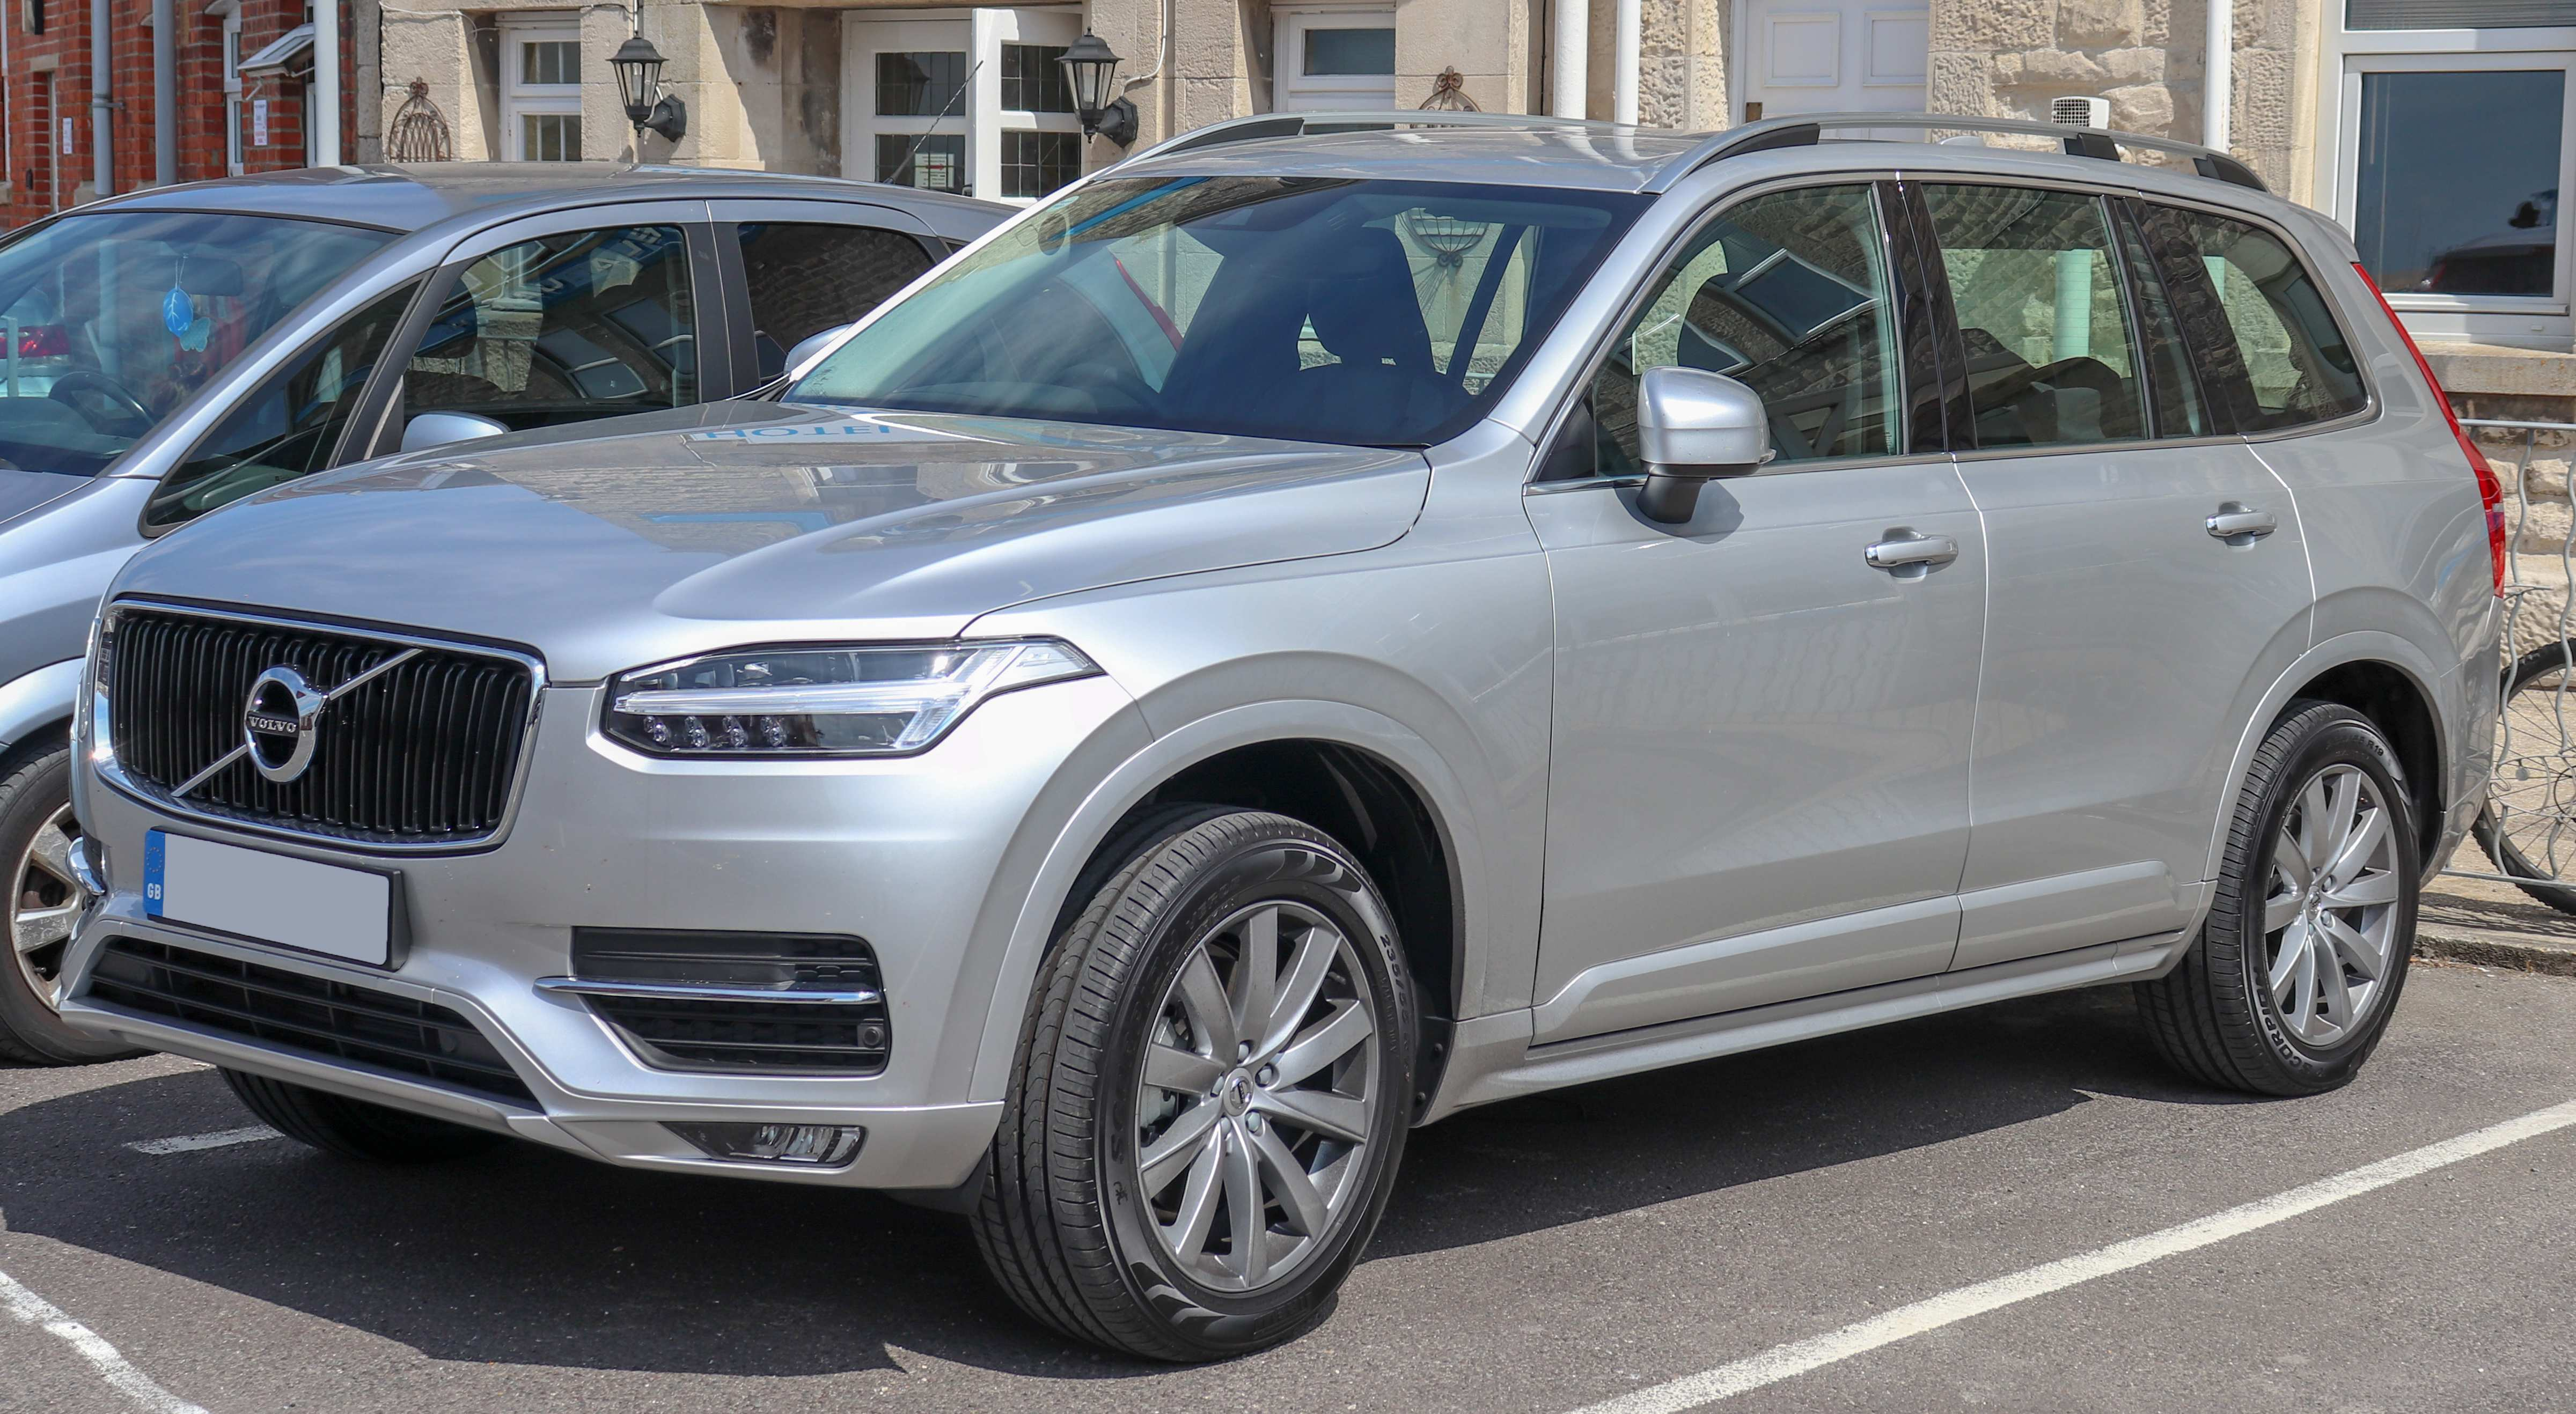 24 A Volvo Xc90 2020 Release Date Price And Review